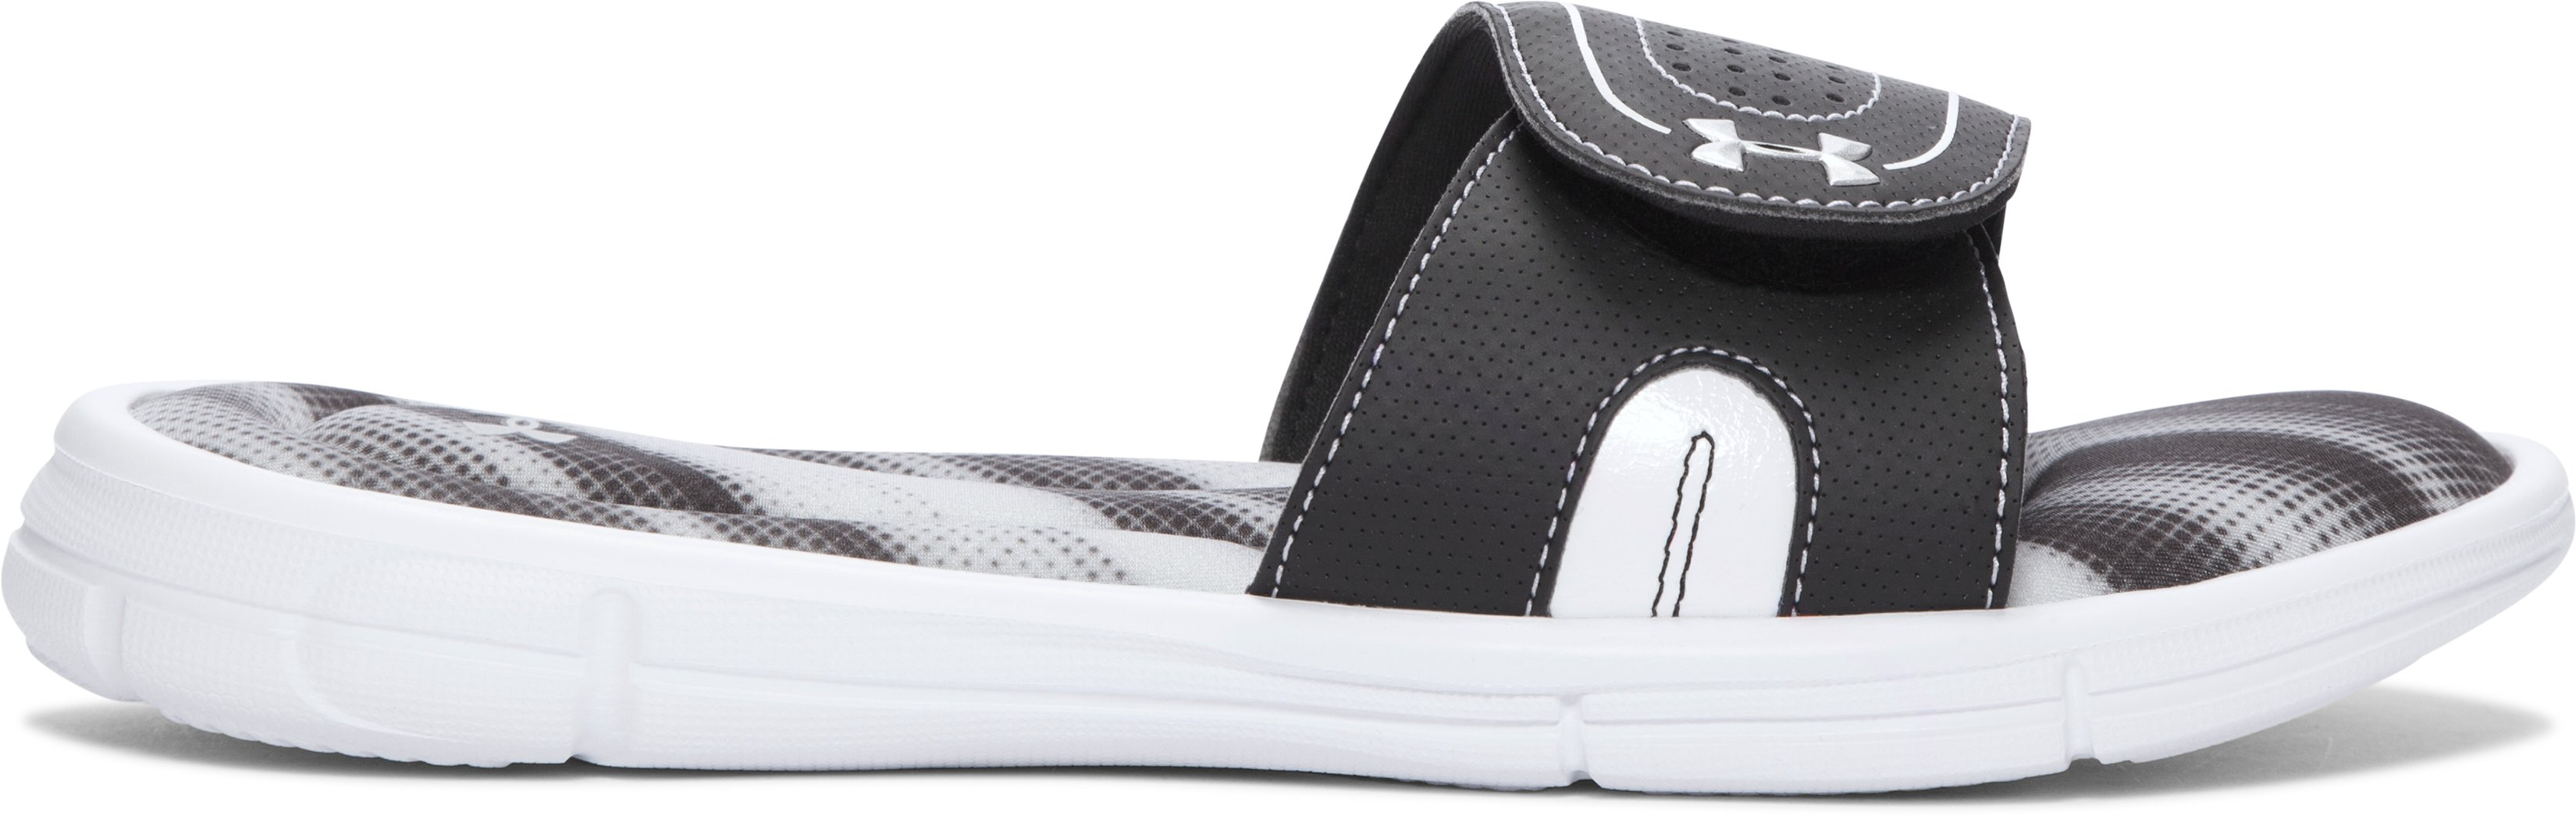 Women's UA Ignite Finisher VIII Slides, GLACIER GRAY,